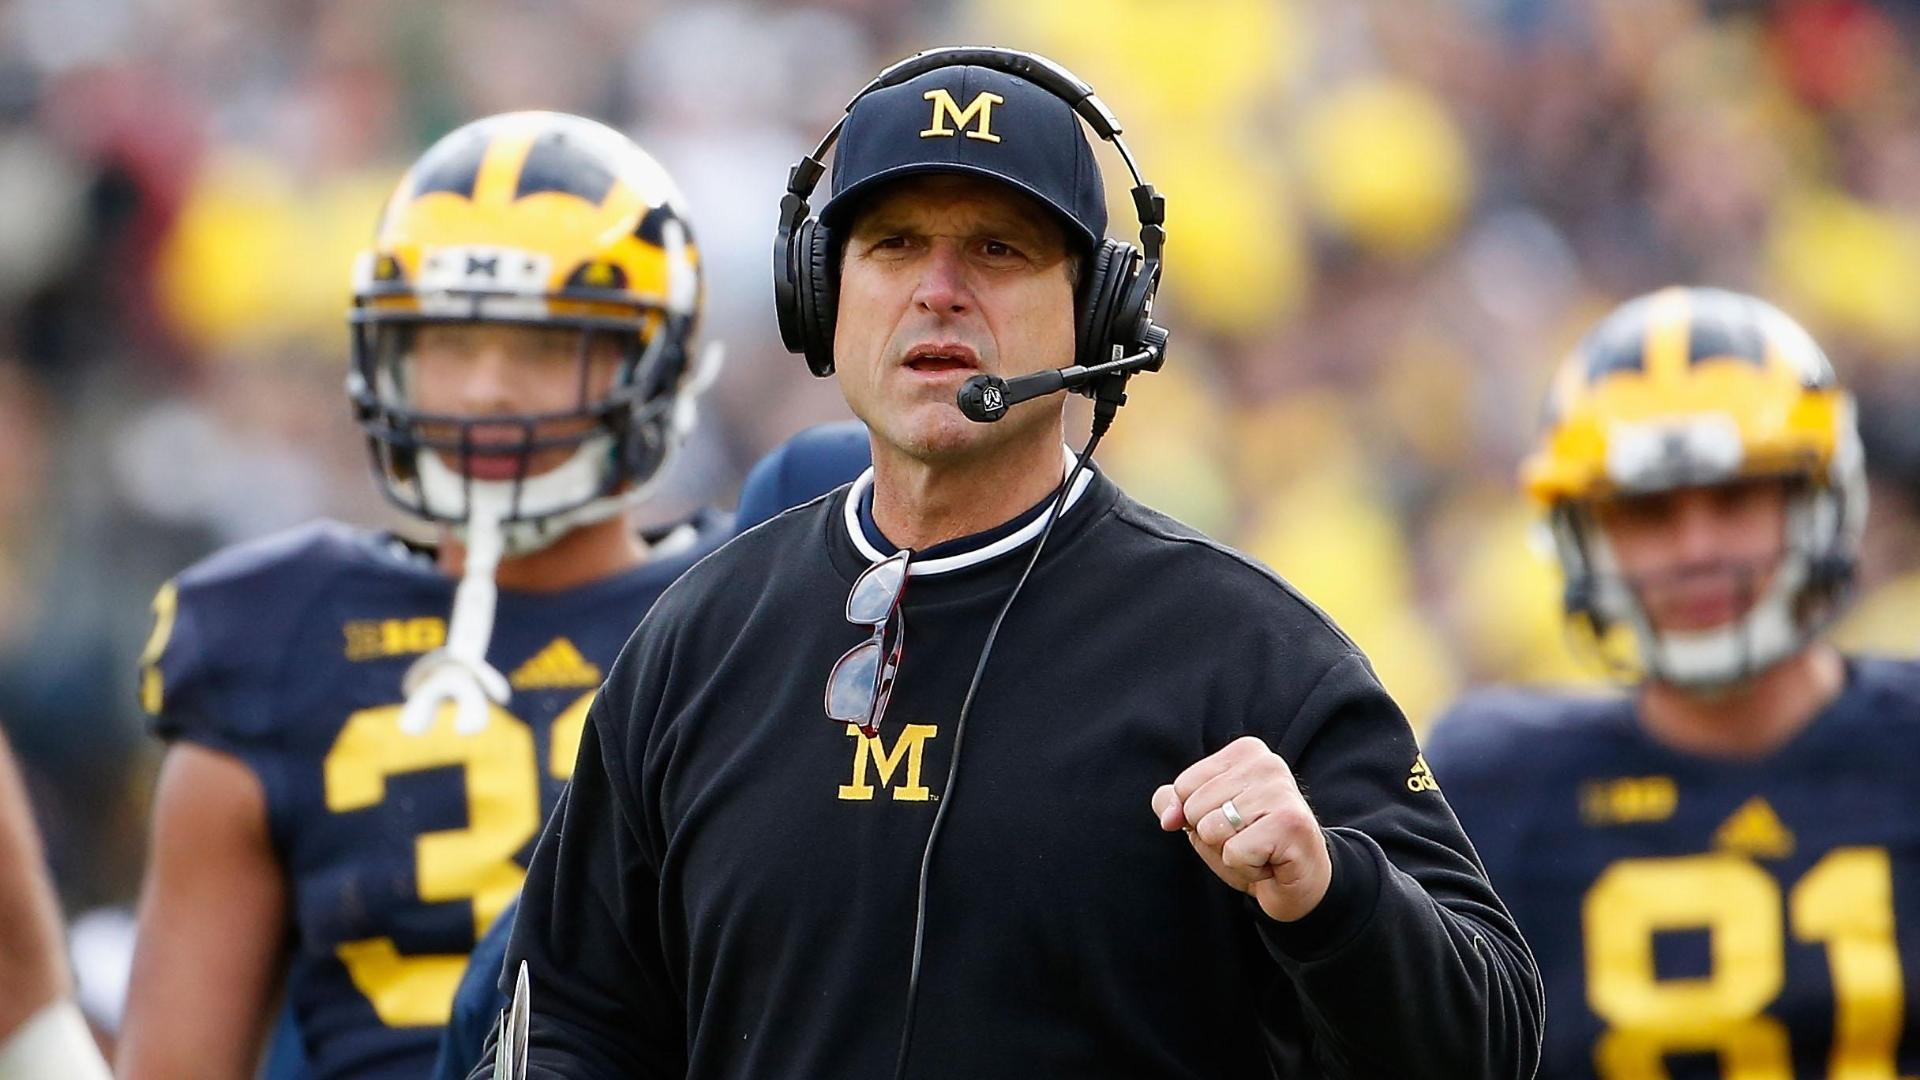 http://a.espncdn.com/media/motion/2016/0220/dm_160219_Harbaugh_Hirings883/dm_160219_Harbaugh_Hirings883.jpg